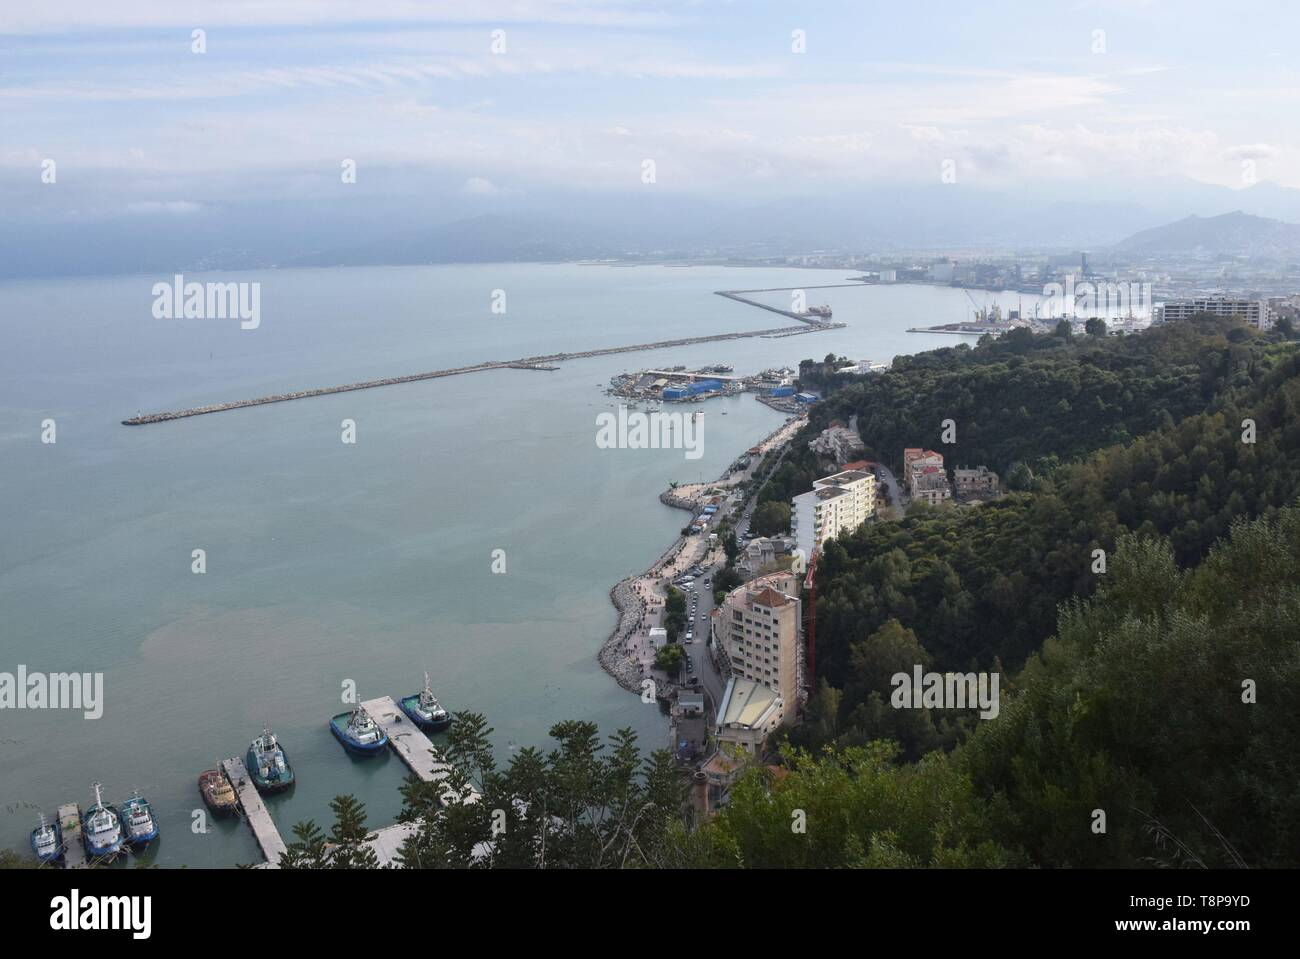 City, harbor and ships on 02.04.2019 in Bejaia - Algeria. | usage worldwide Stock Photo